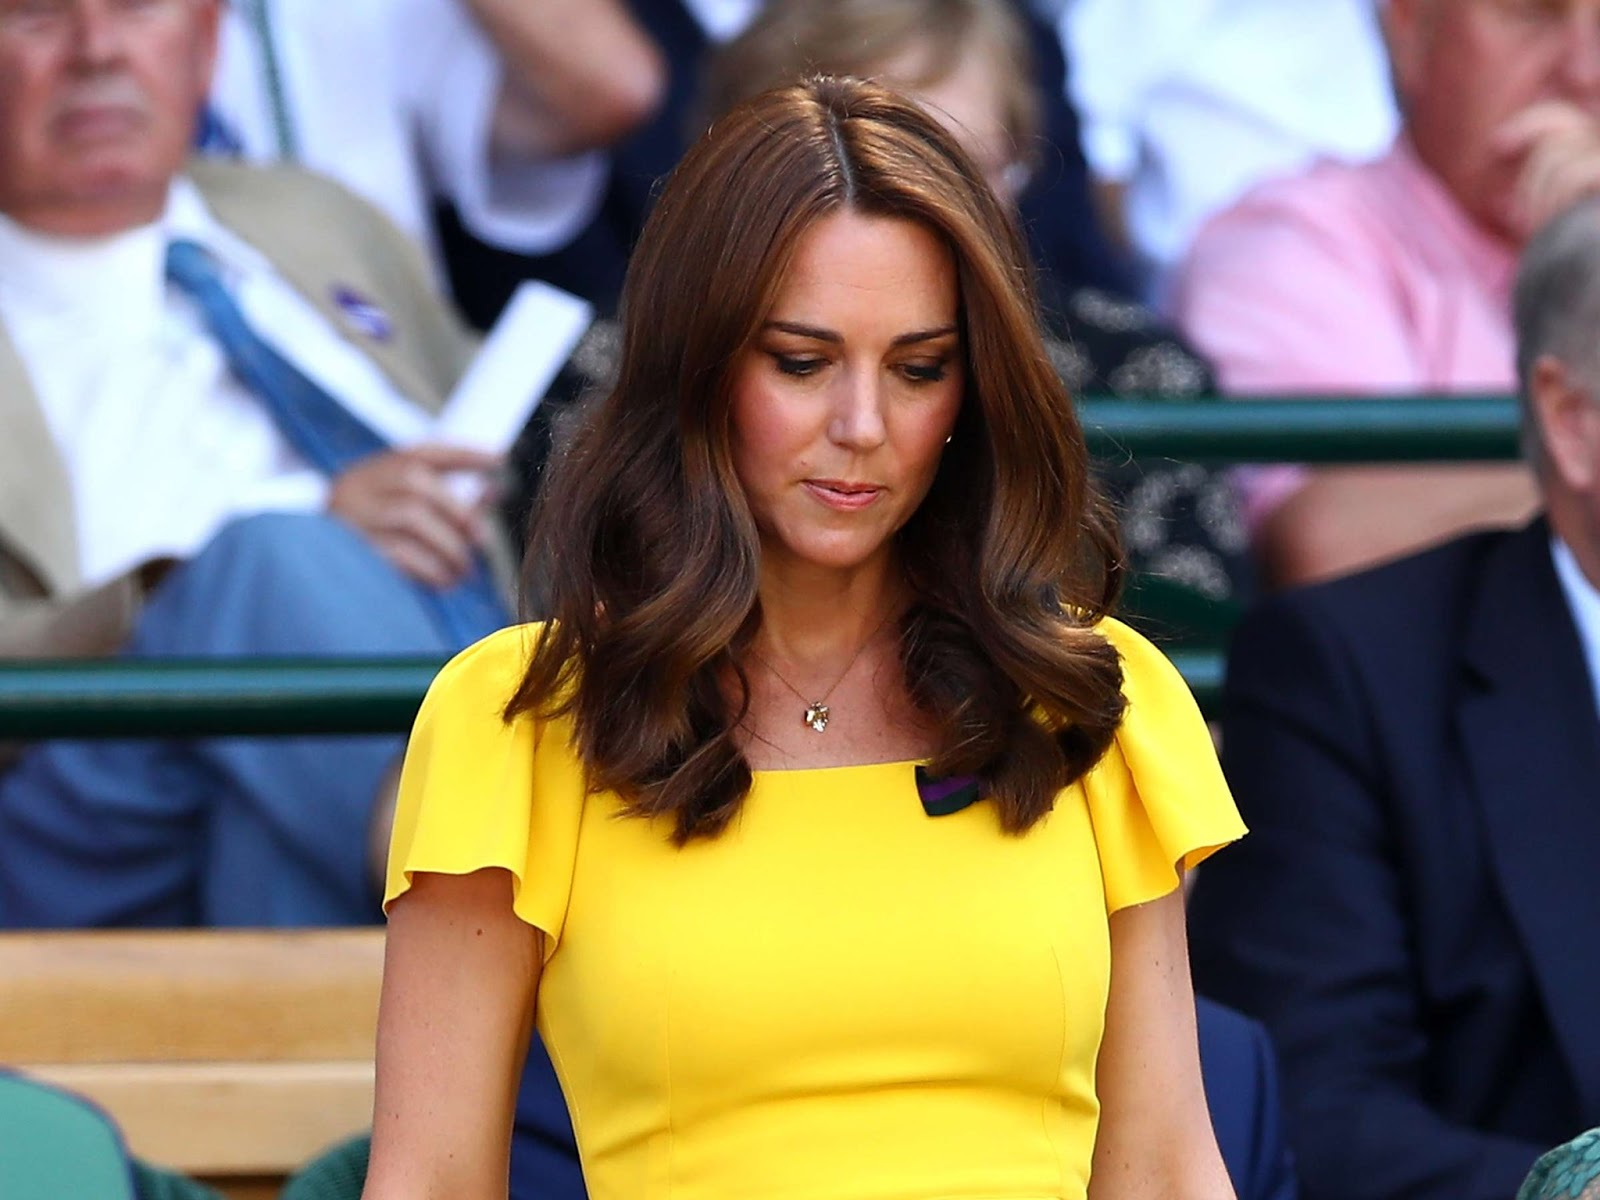 The Duchess of Cambridge dazzled in a designer frock as she joined Prince William for a star-studded men's final at Wimbledon.